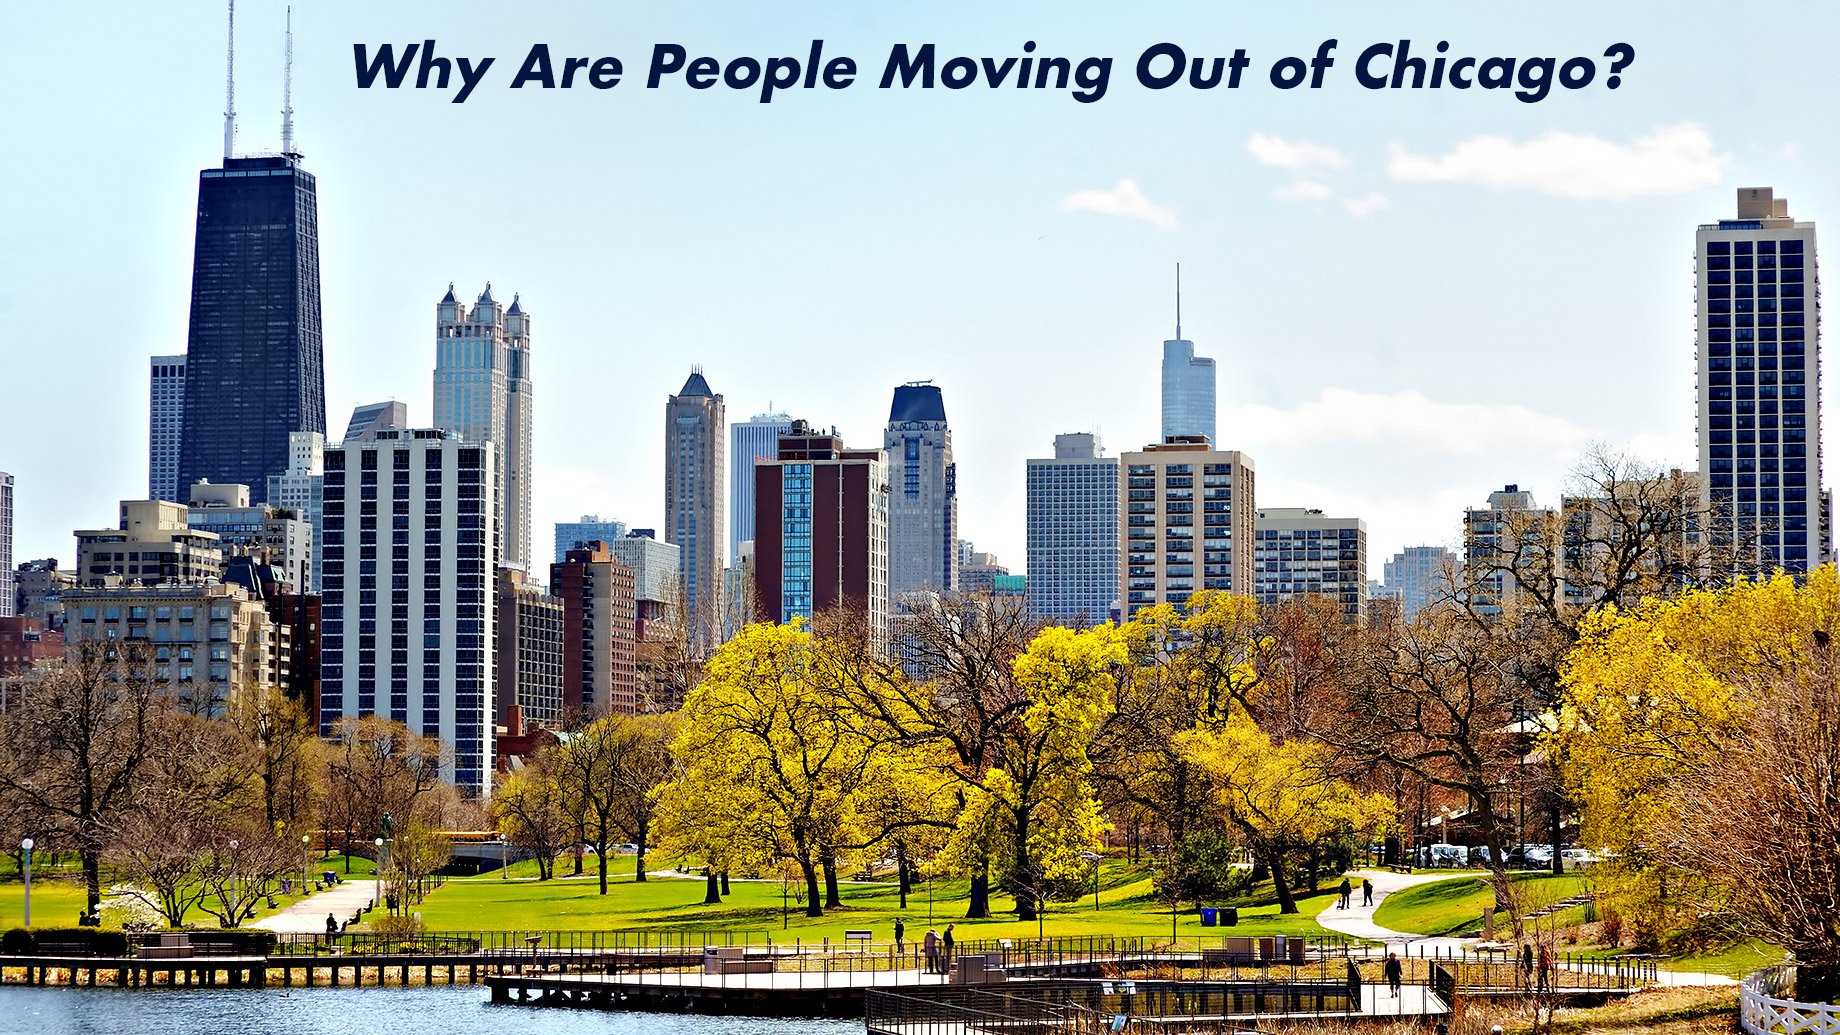 Why Are People Moving Out of Chicago? The Top 8 Reason for the Exodus